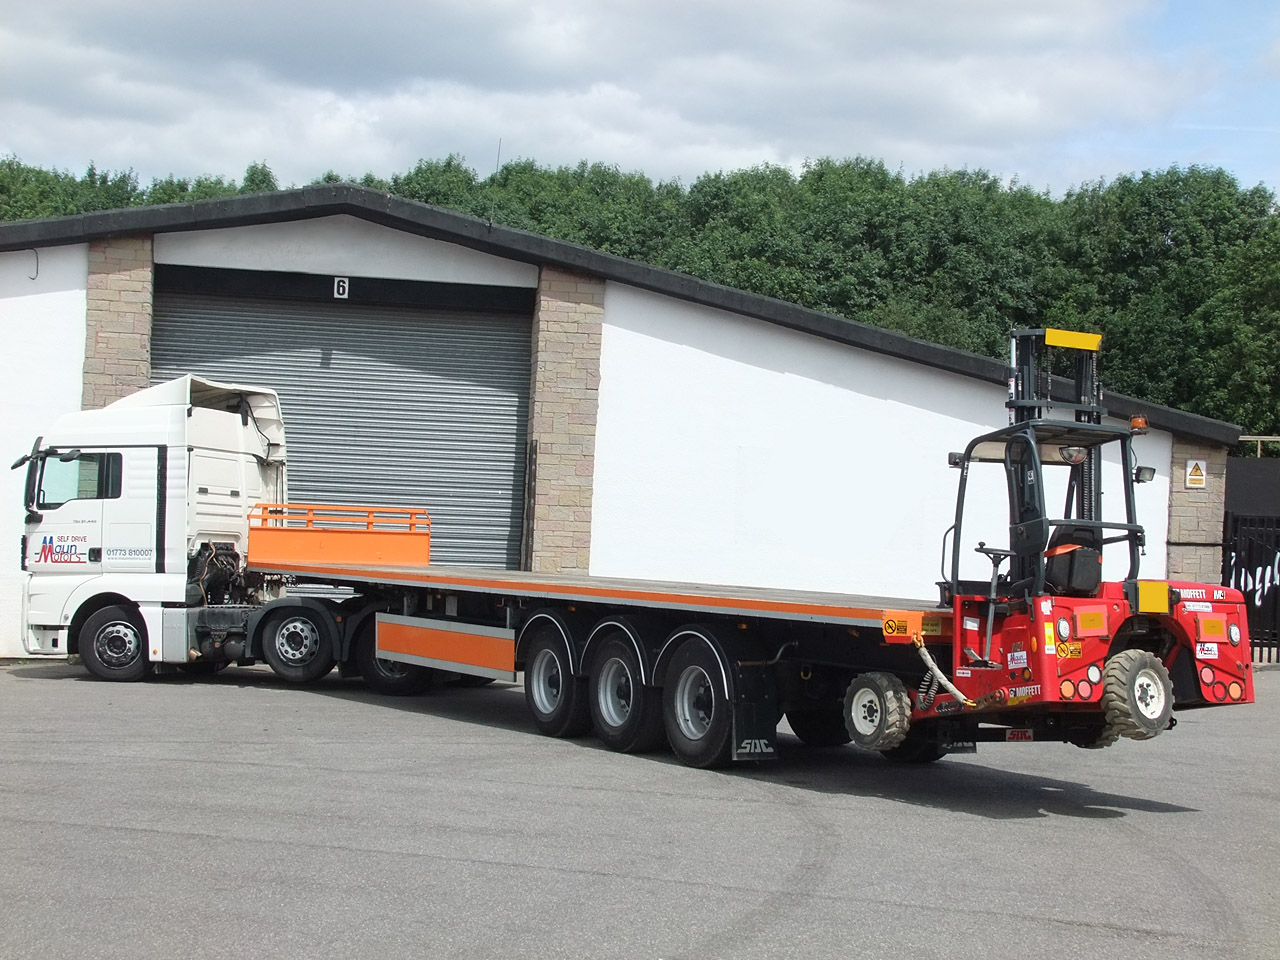 HGV Trailer Rental - 40 foot Flatbed Tri-Axle, Moffett Mounting Kit